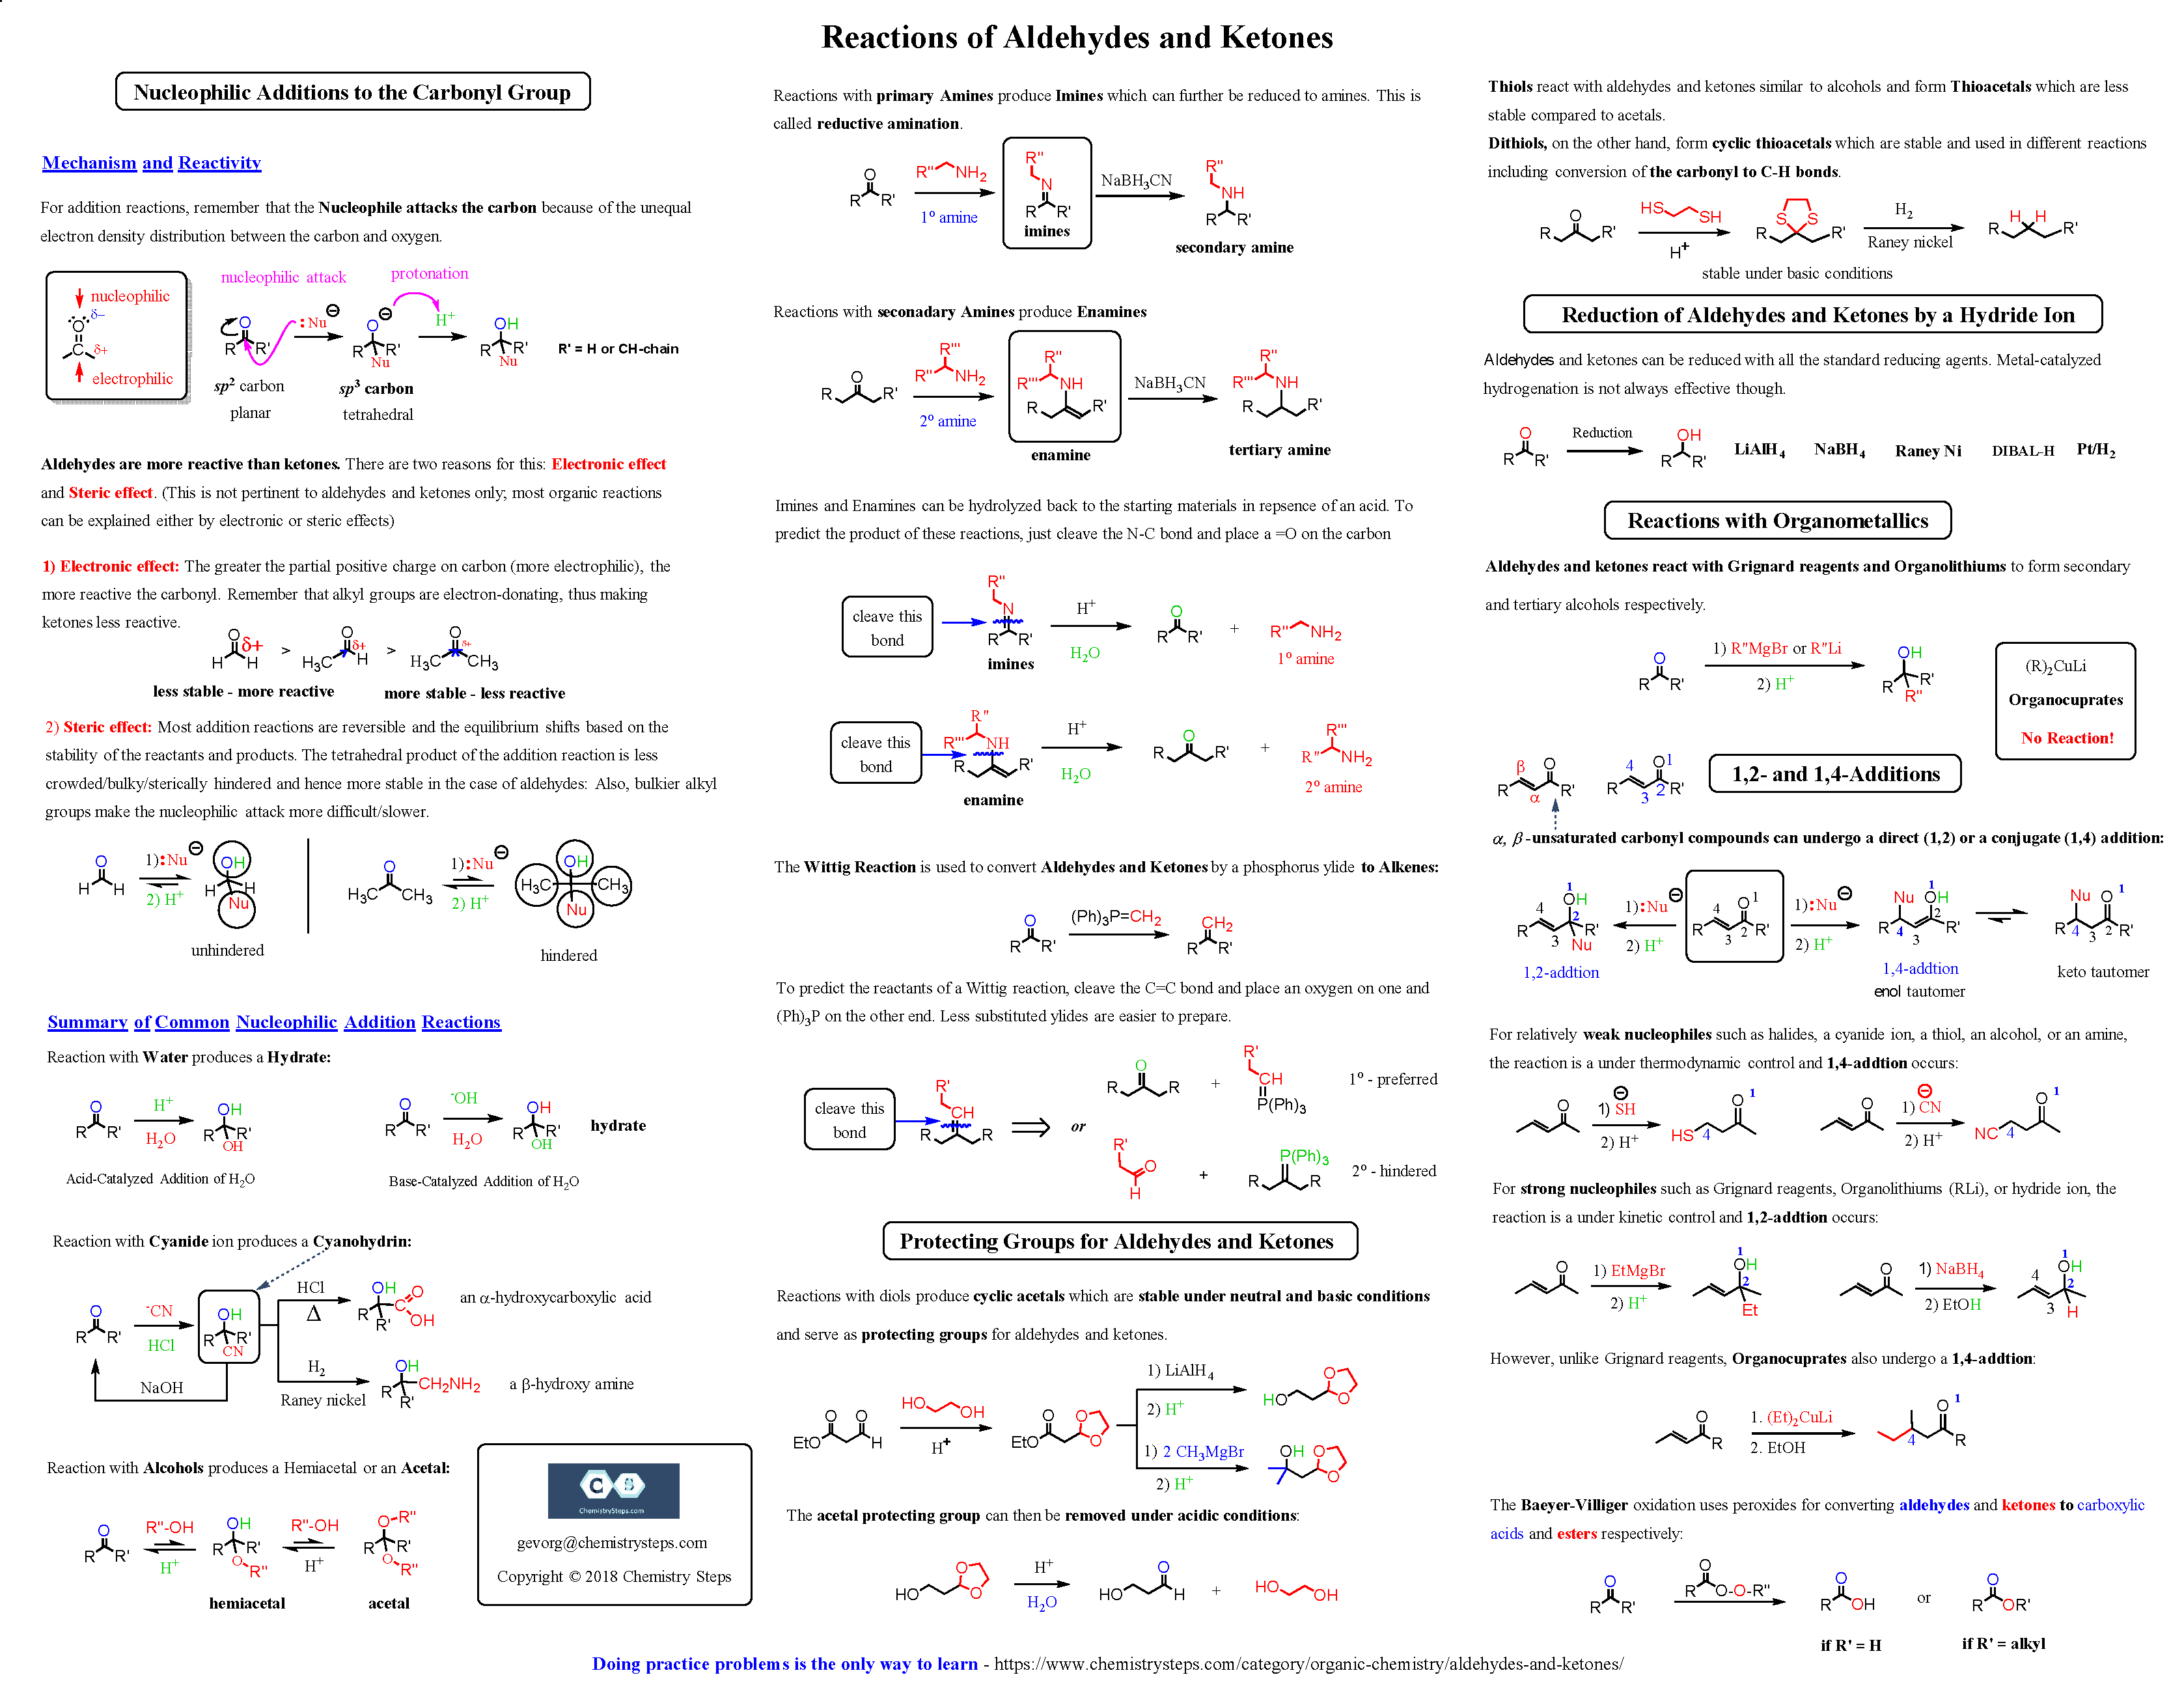 Summary of Aldehydes and Ketones Reactions - Chemistry Steps